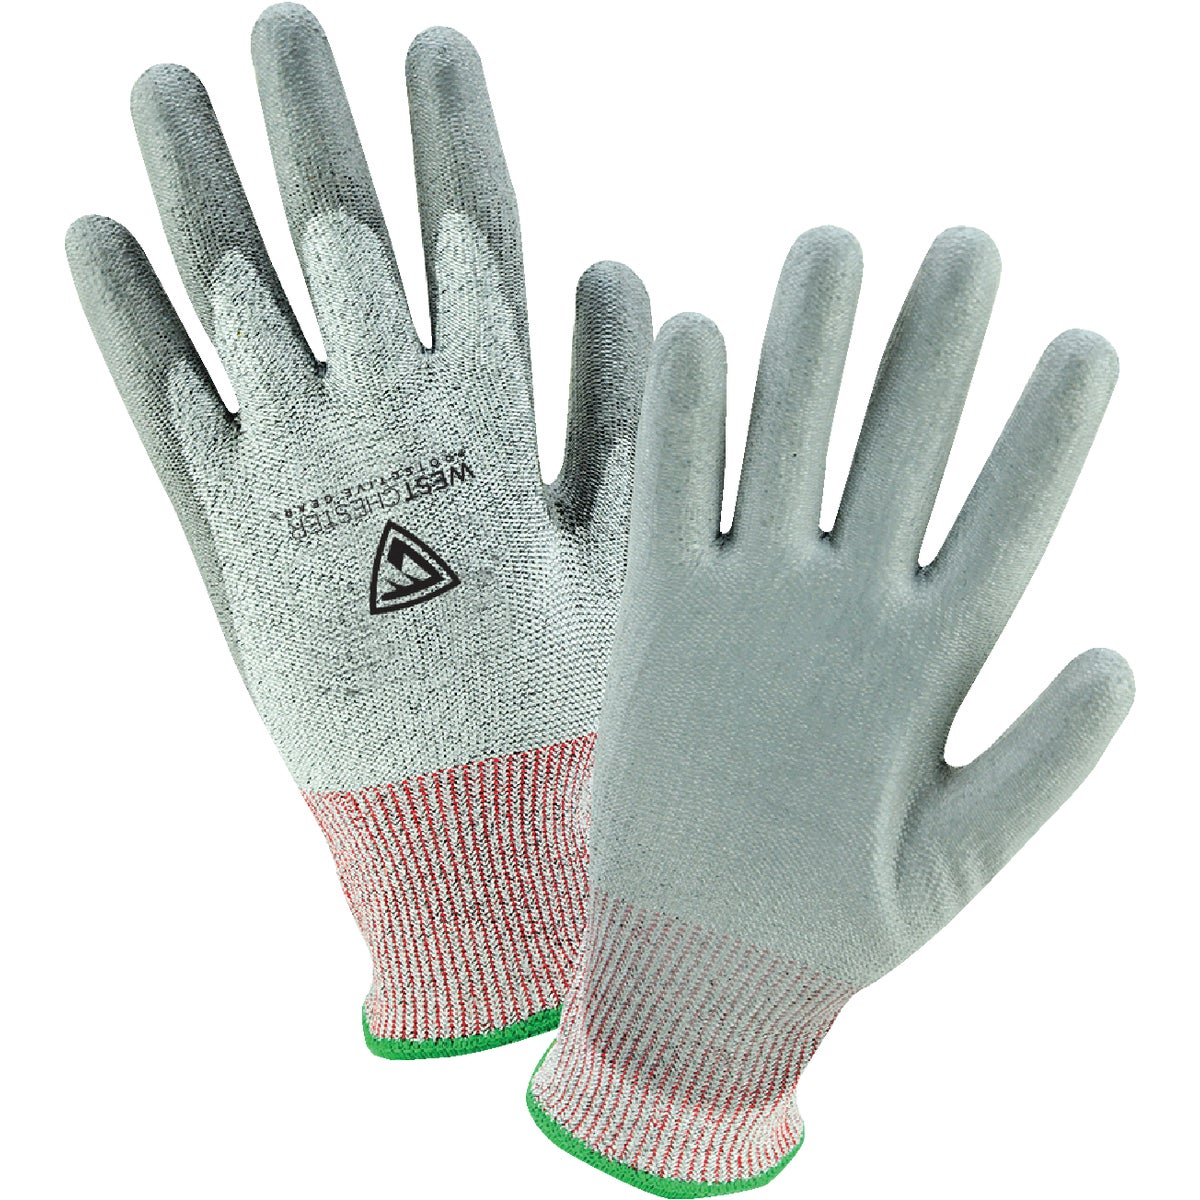 CUT 5 LRG GLOVE - DPG805L by Radians